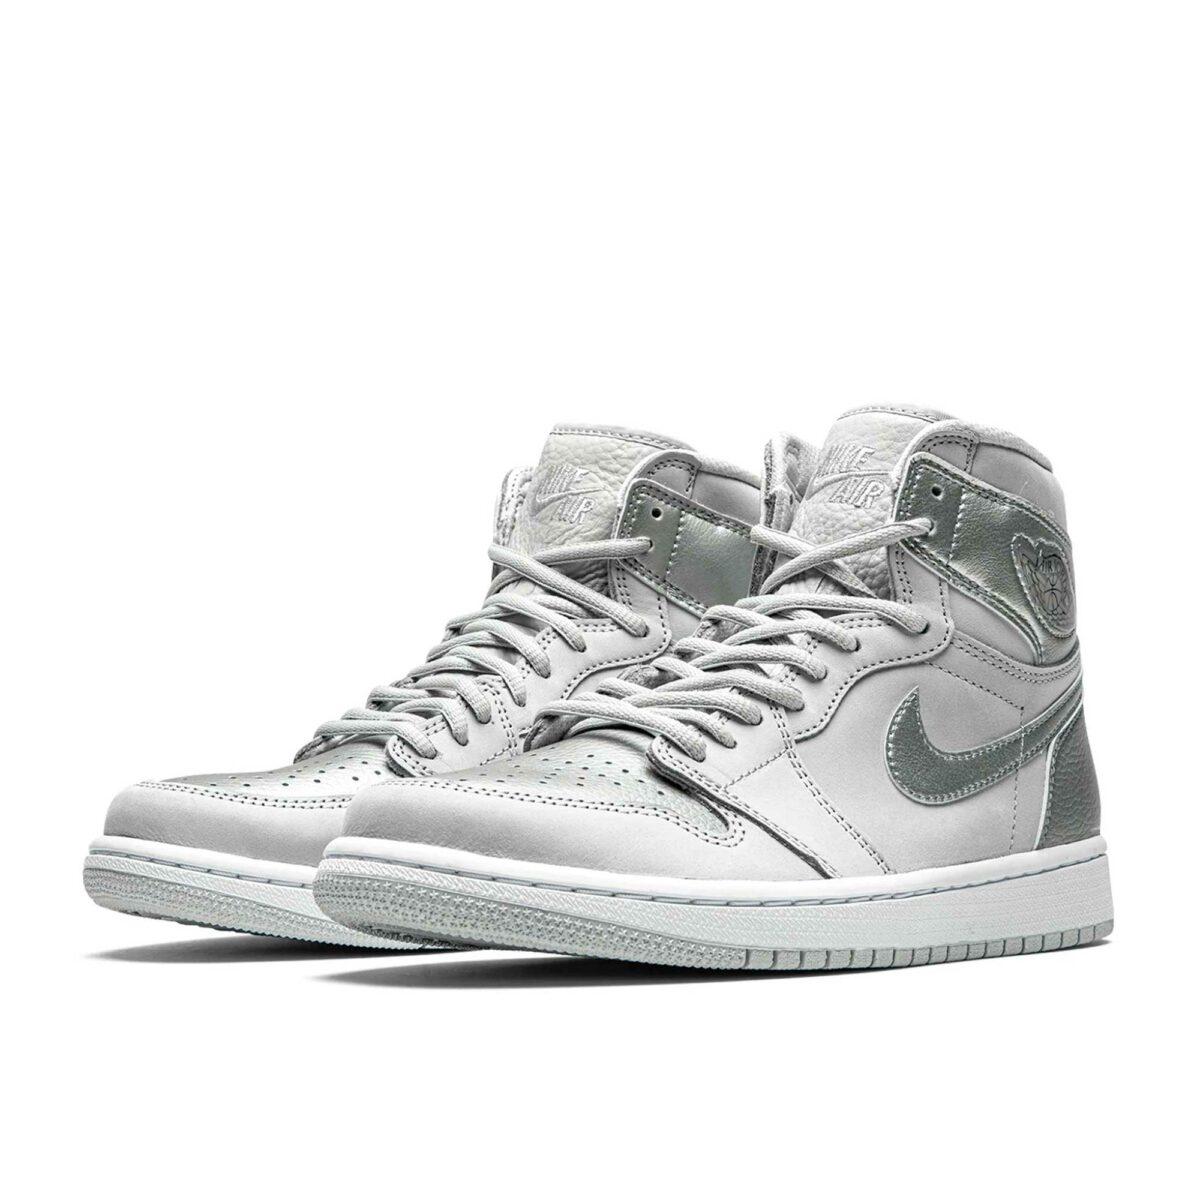 nike air jordan 1 hight co.jp metallic silver DC1788_029 купить